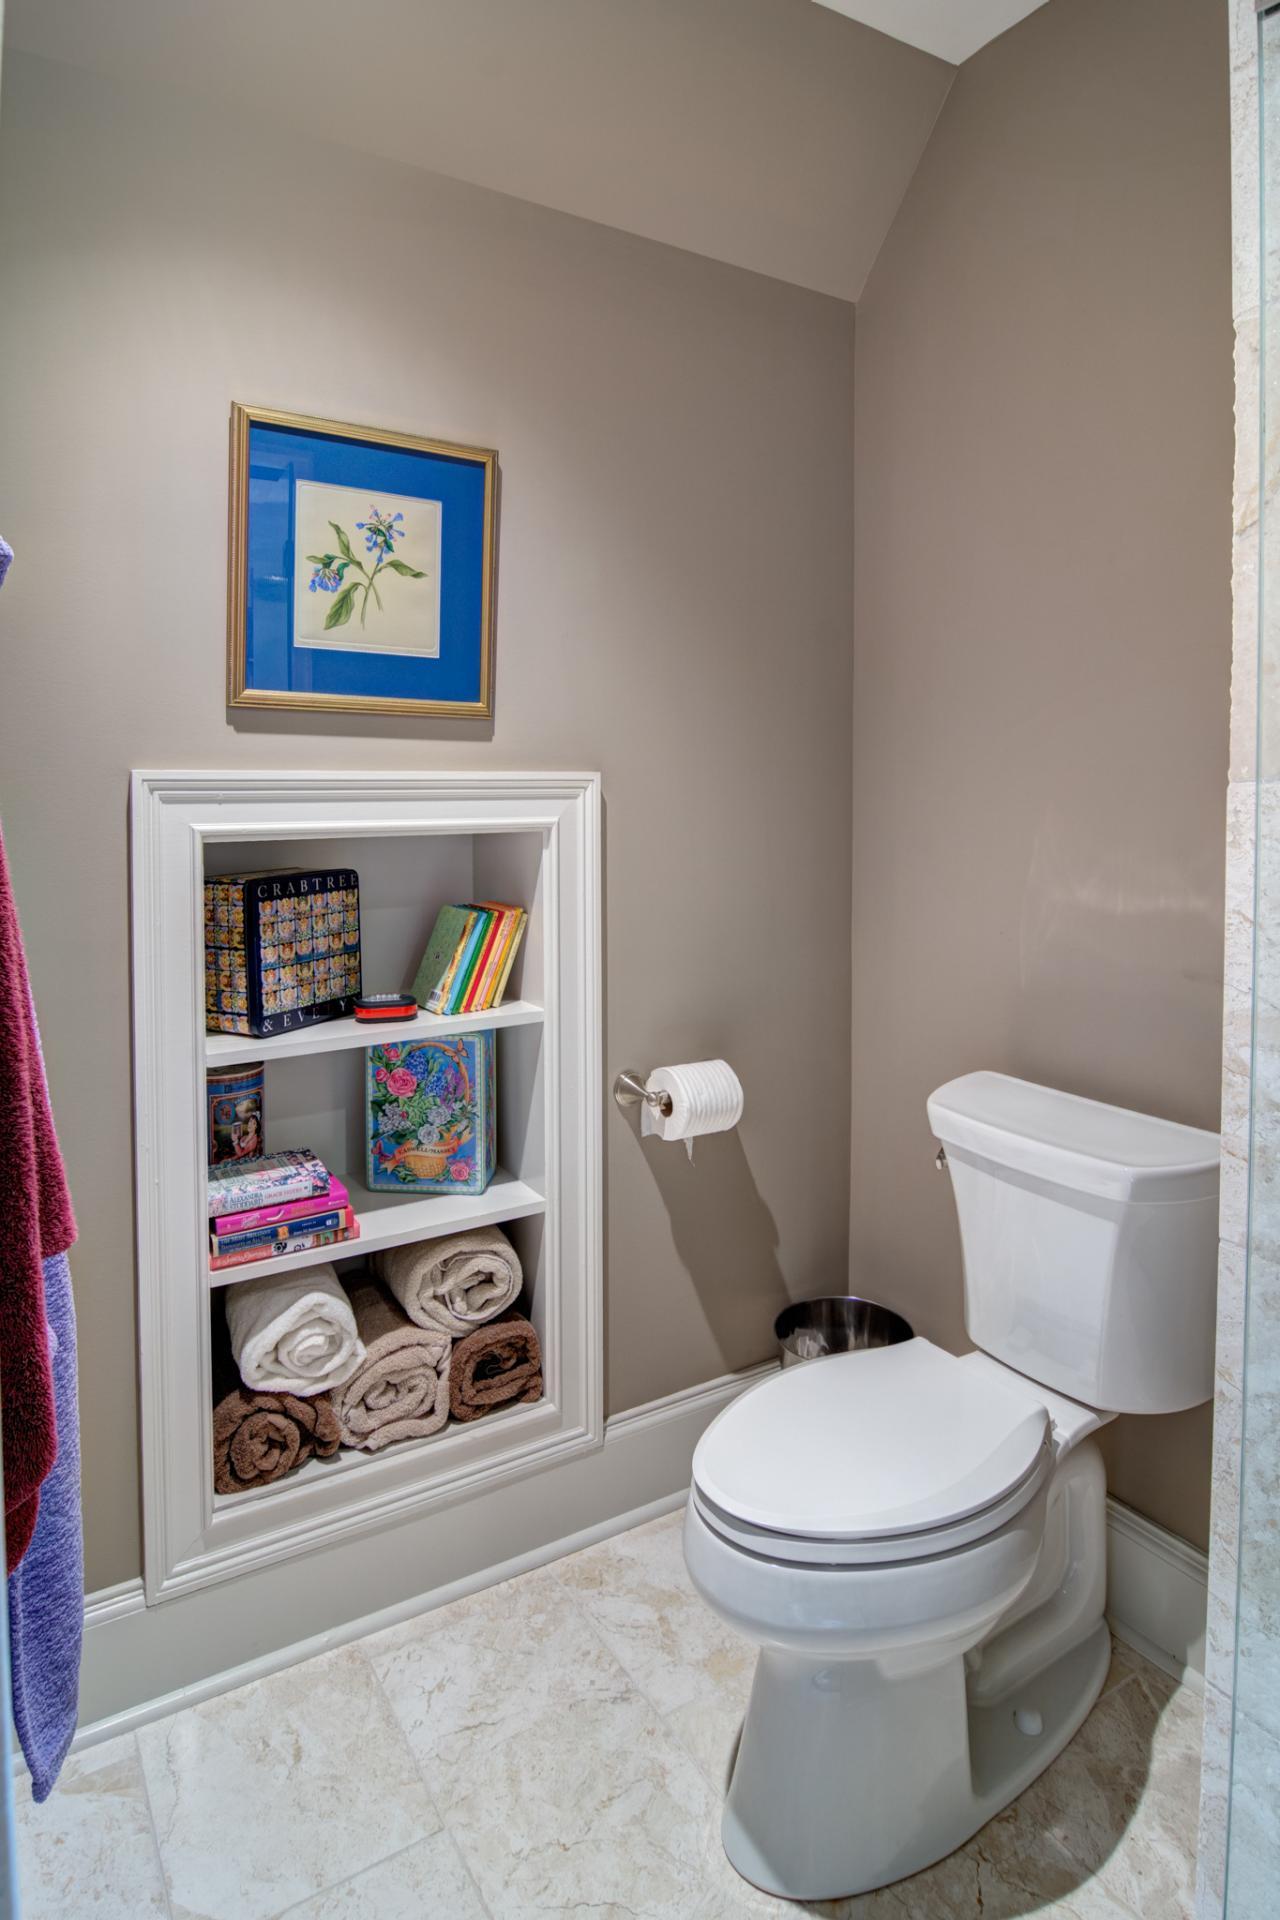 Built in bathroom wall storage - Built In Storage Bathroom Storage Ideas